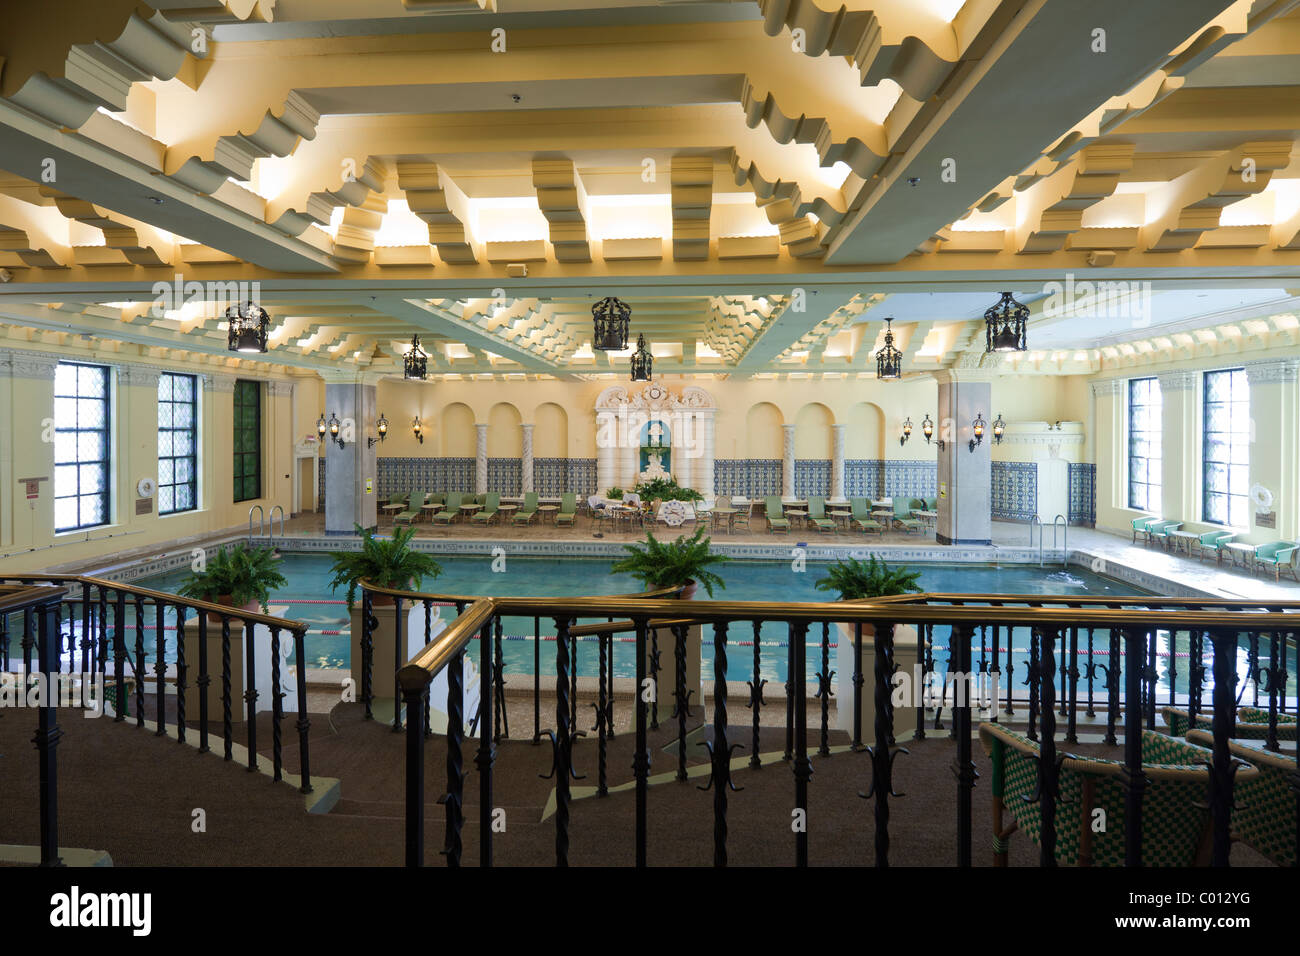 swimming pool medinah athletic club now the hotel intercontinental